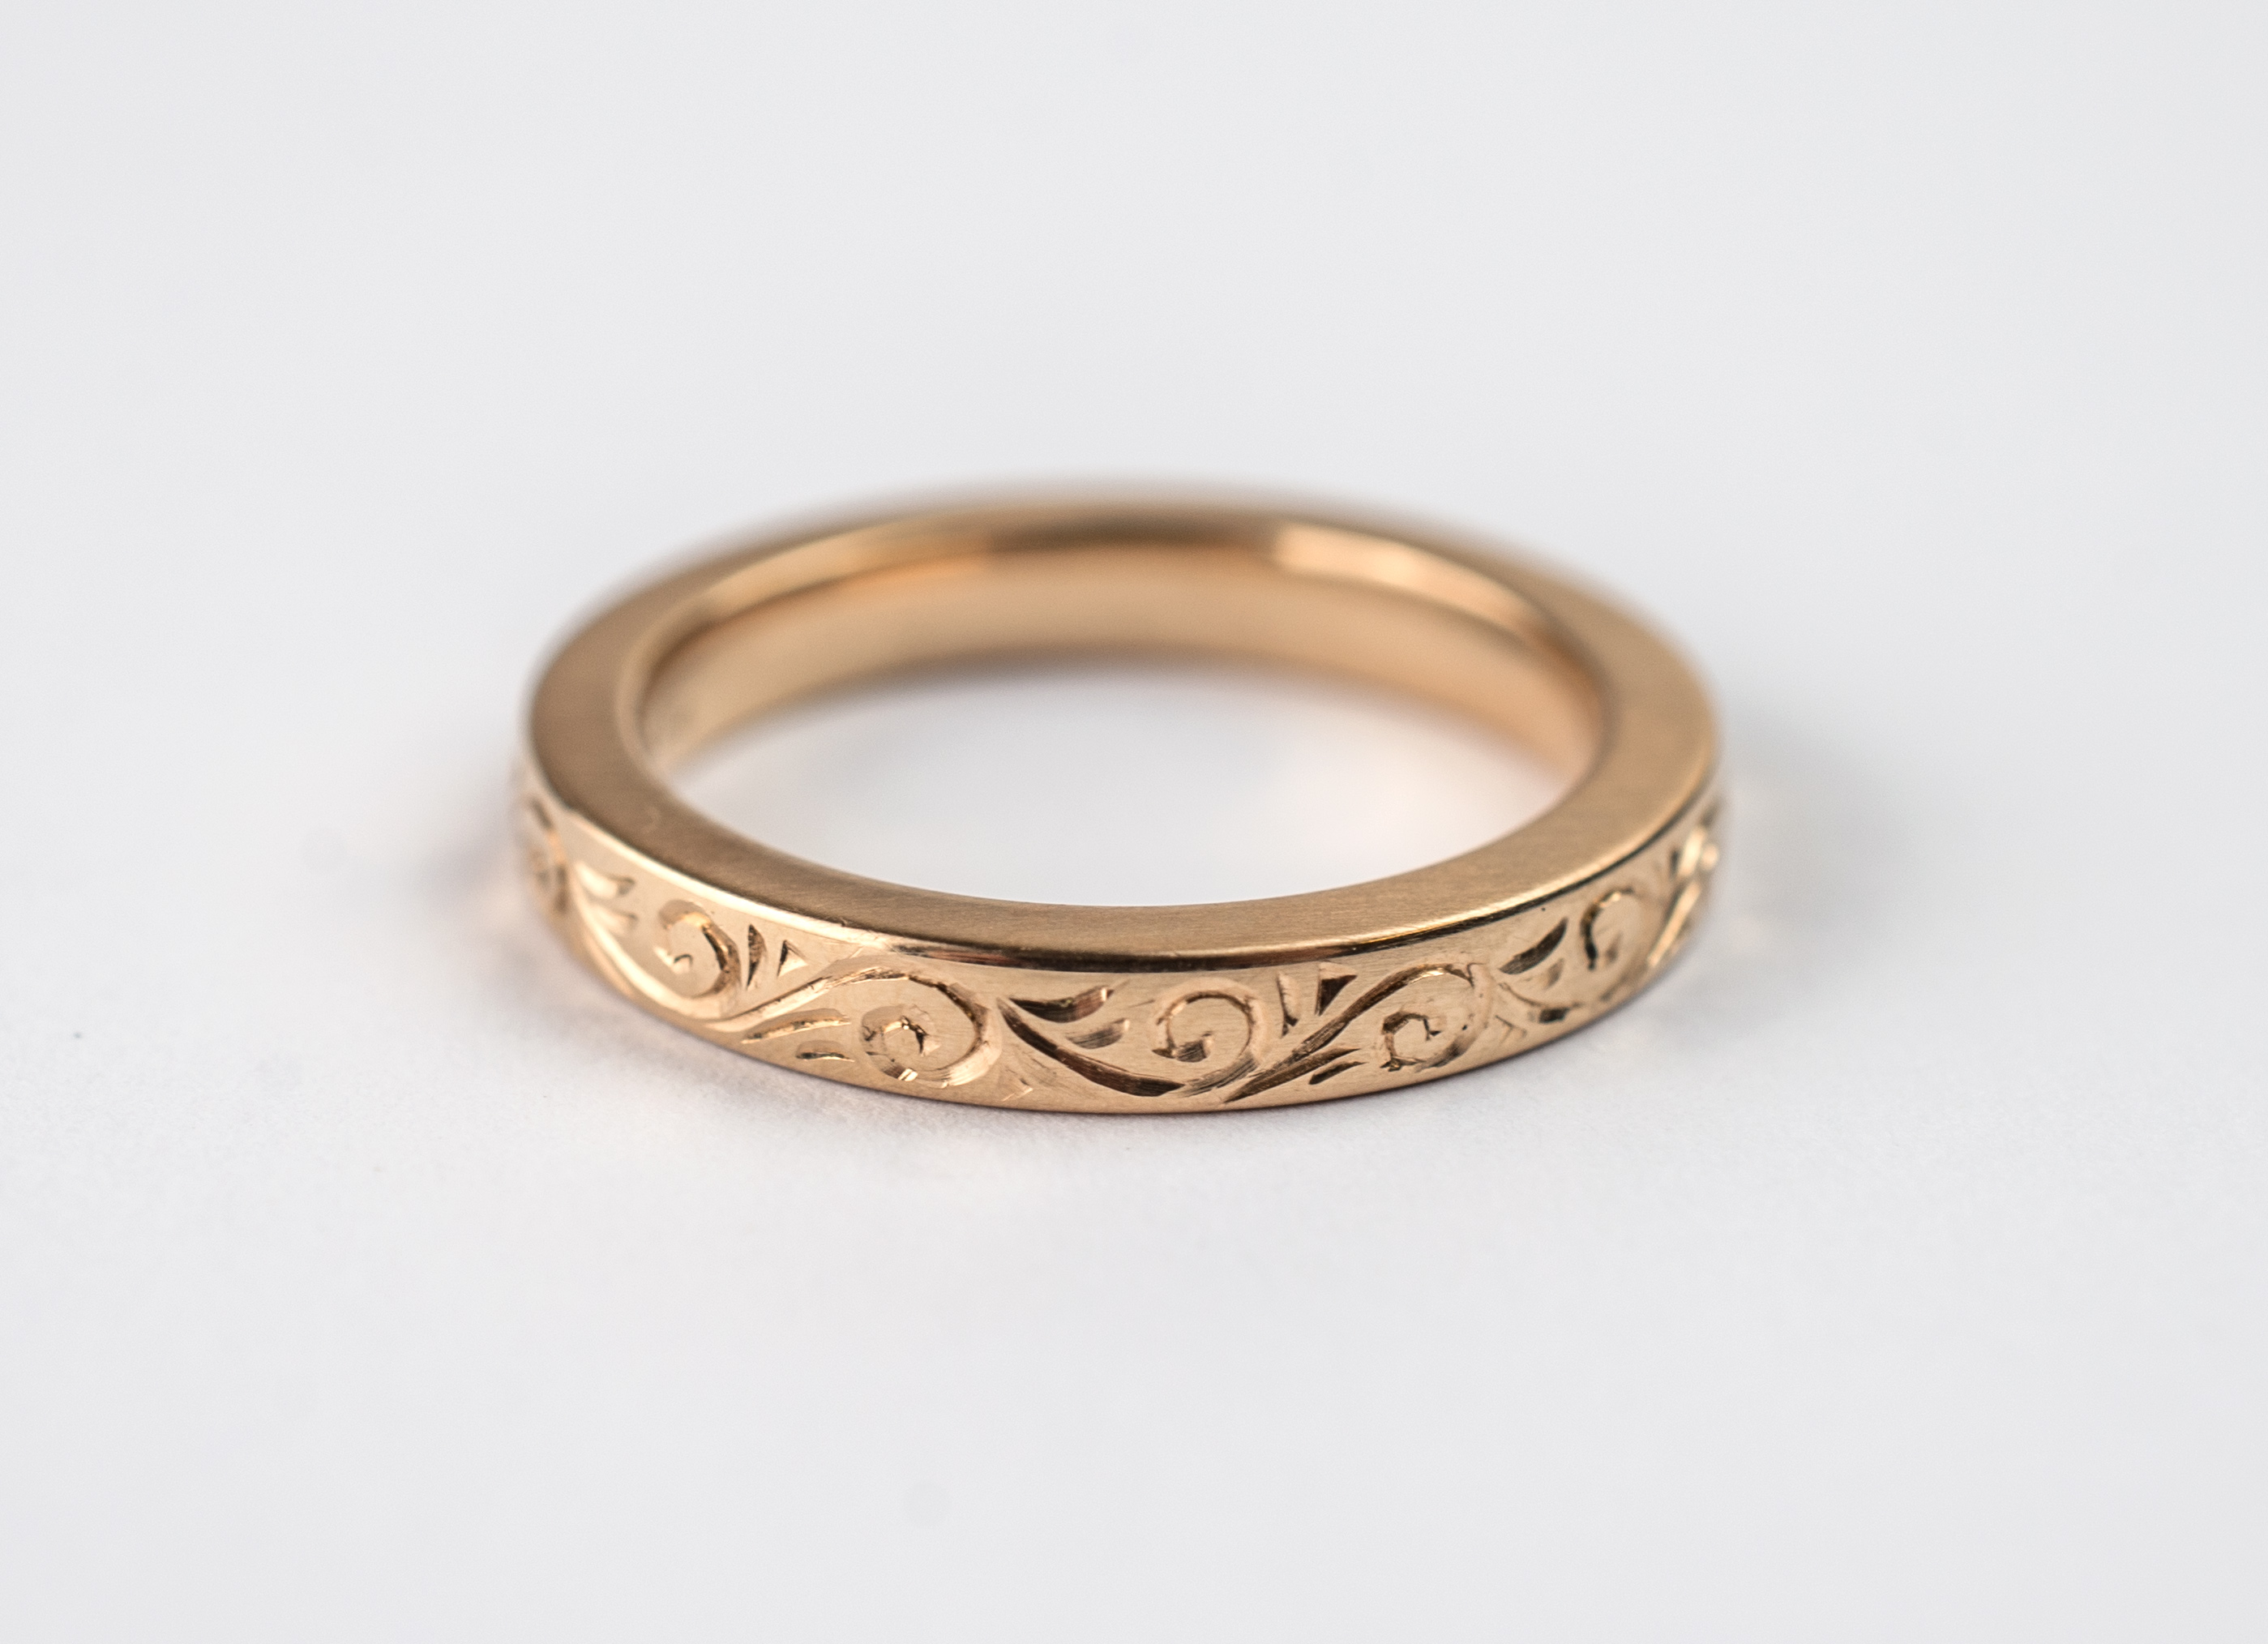 Hand engraved wedding ring ra designer jewellery for Engravings on wedding rings